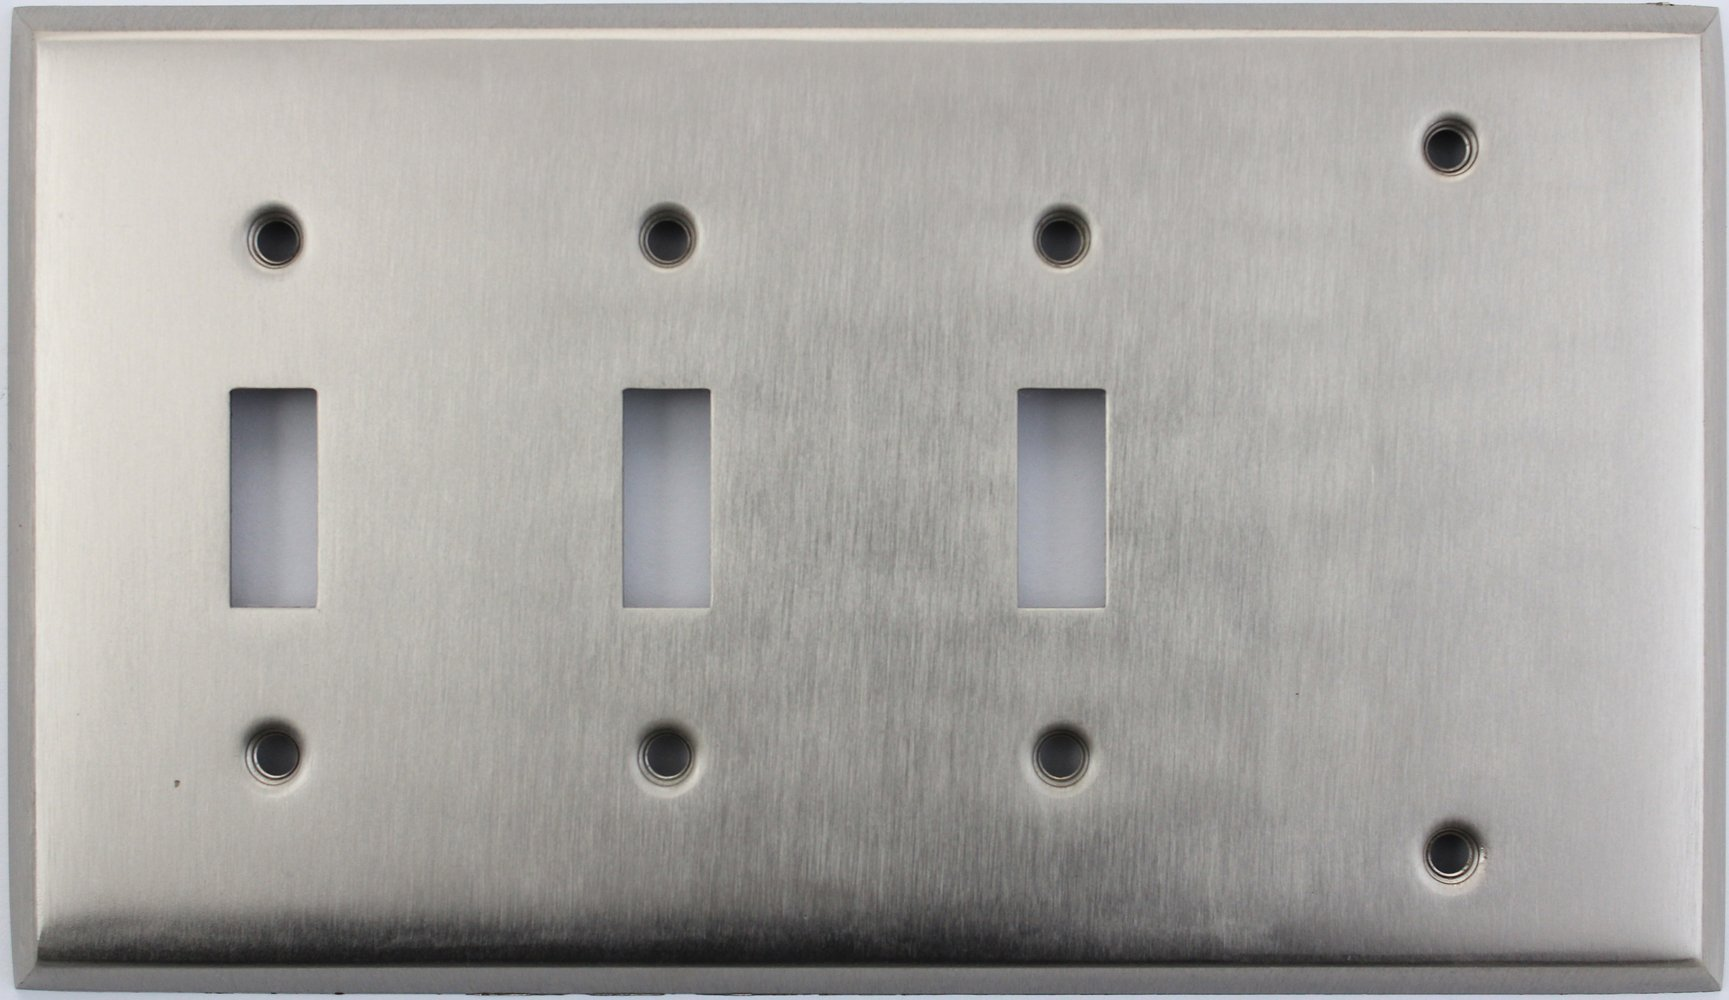 Classic Accents Stamped Steel Satin Nickel Four Gang Wall Plate - Three Toggle Switch Openings One Blank